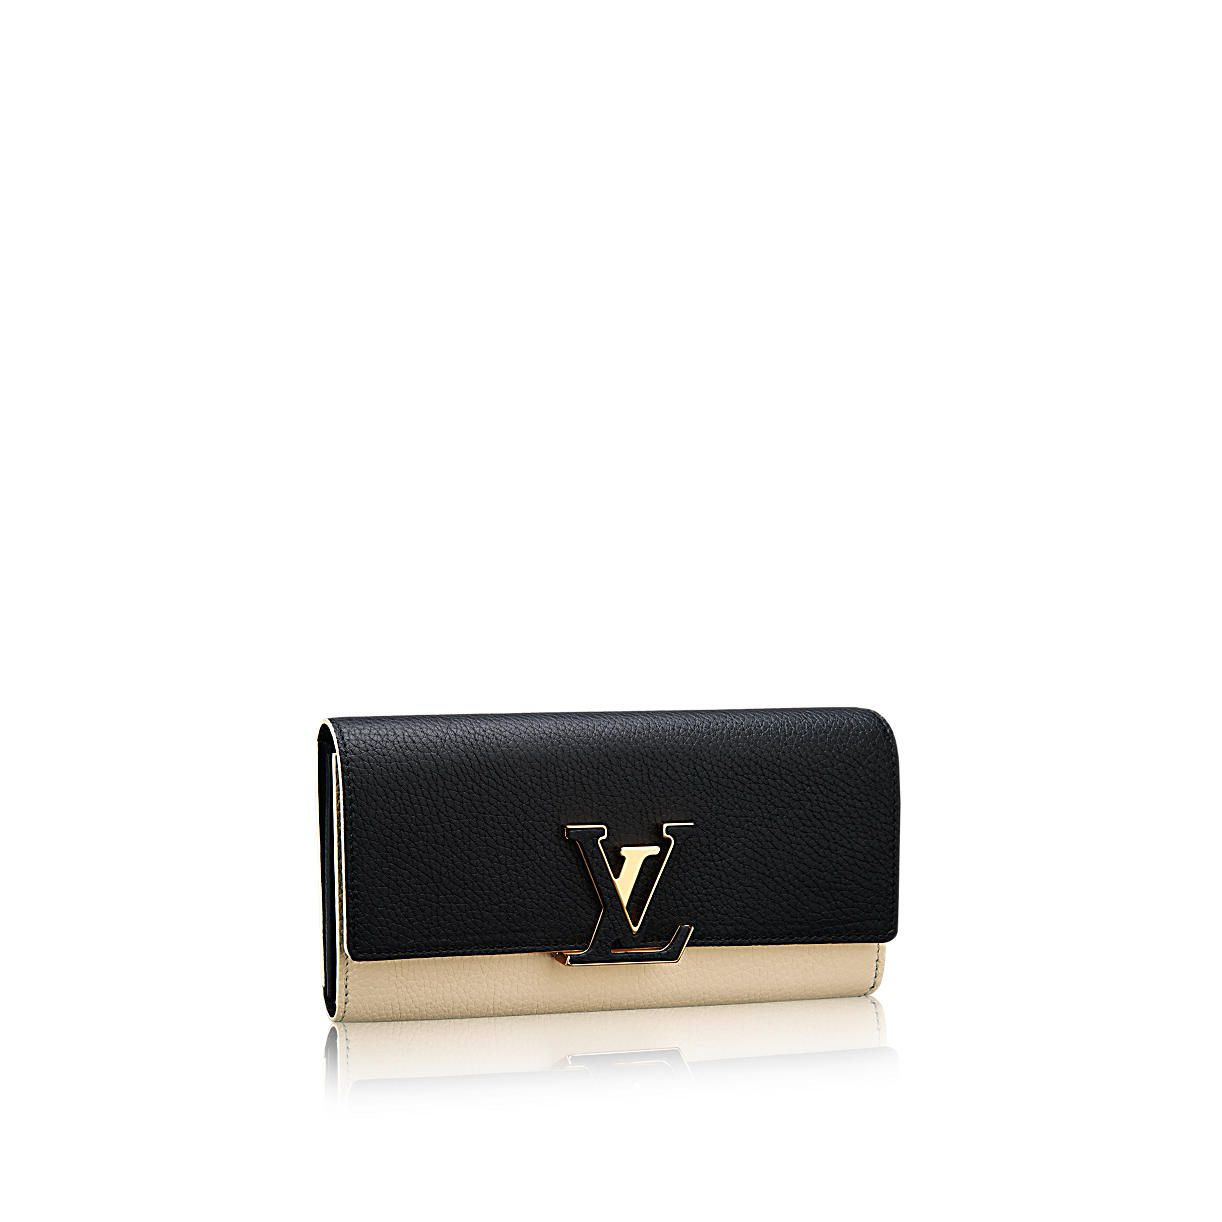 Capucines wallet taurillon leather in womens small